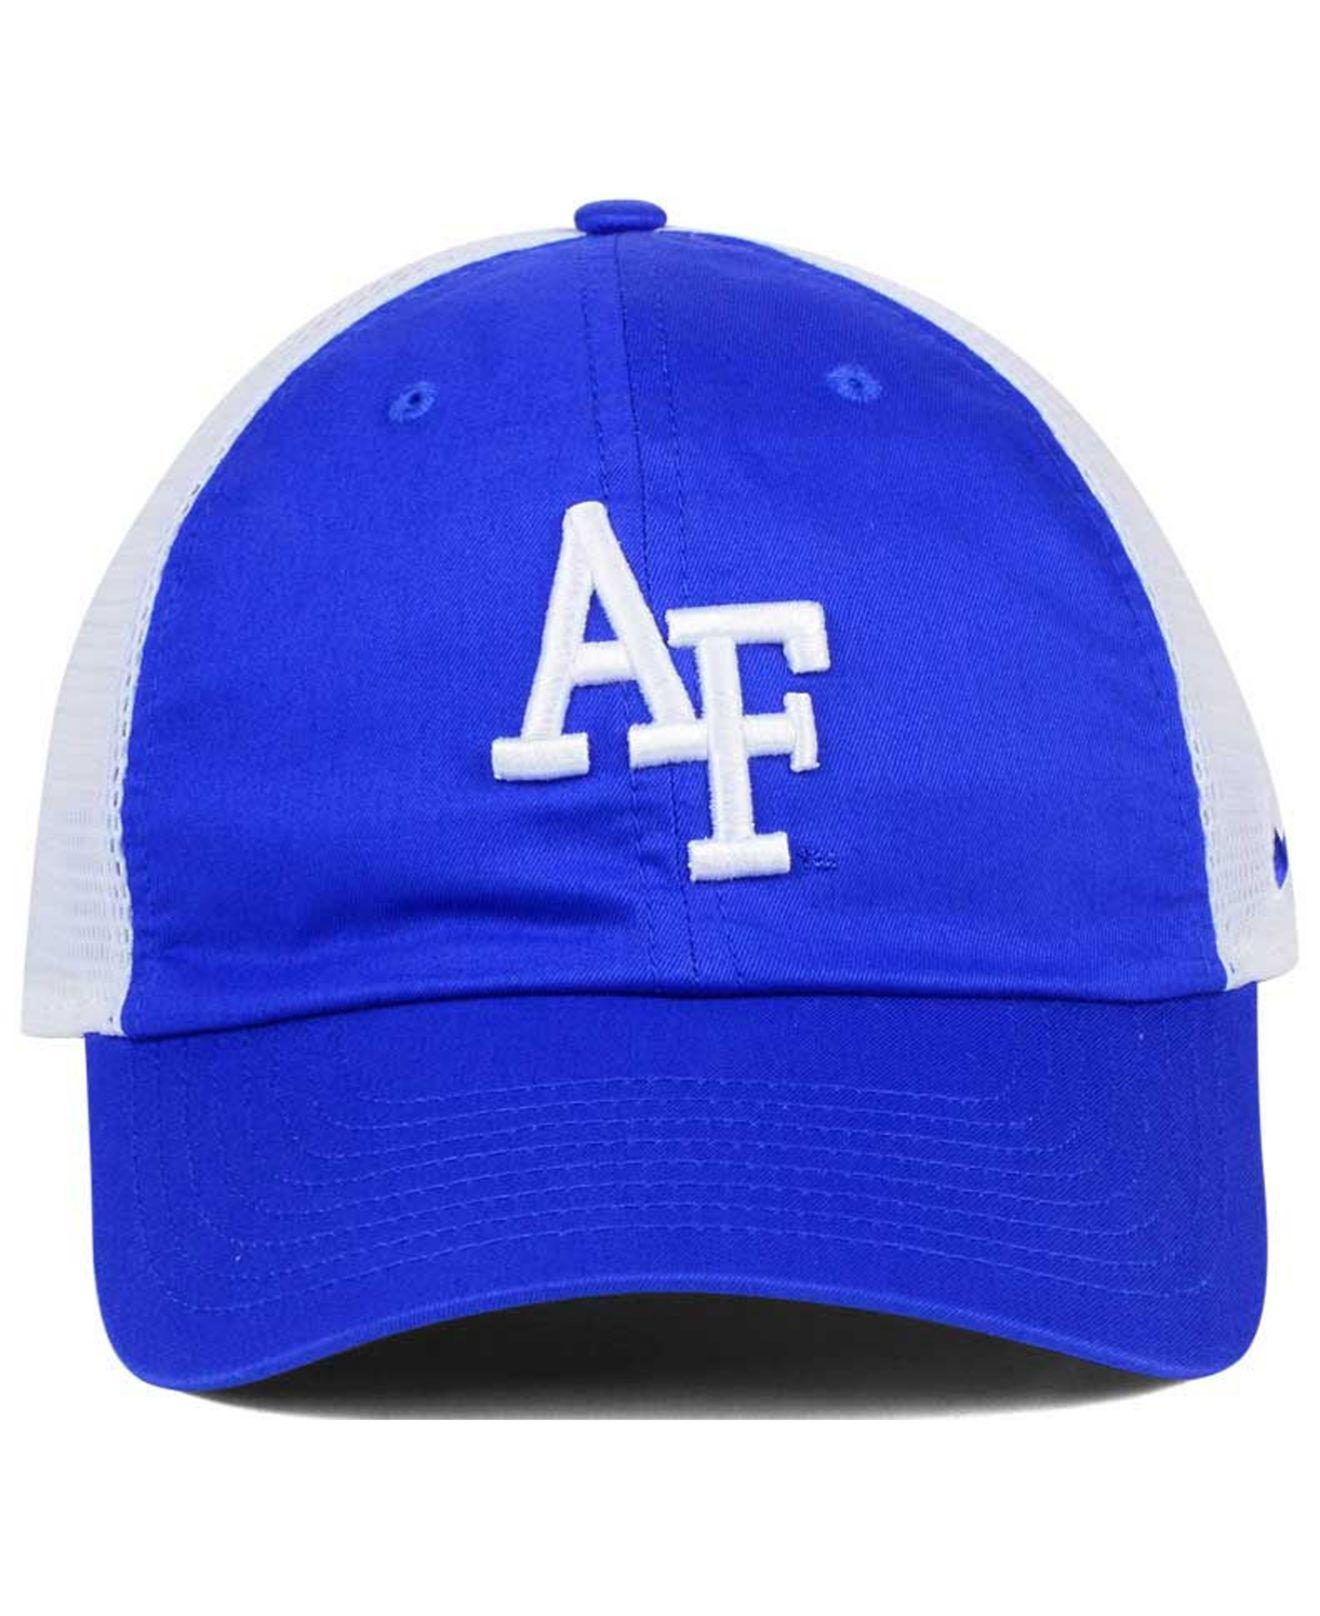 the latest a6d09 a7105 ... switzerland lyst nike h86 trucker cap in blue for men save  23.07692307692308 e5252 02027